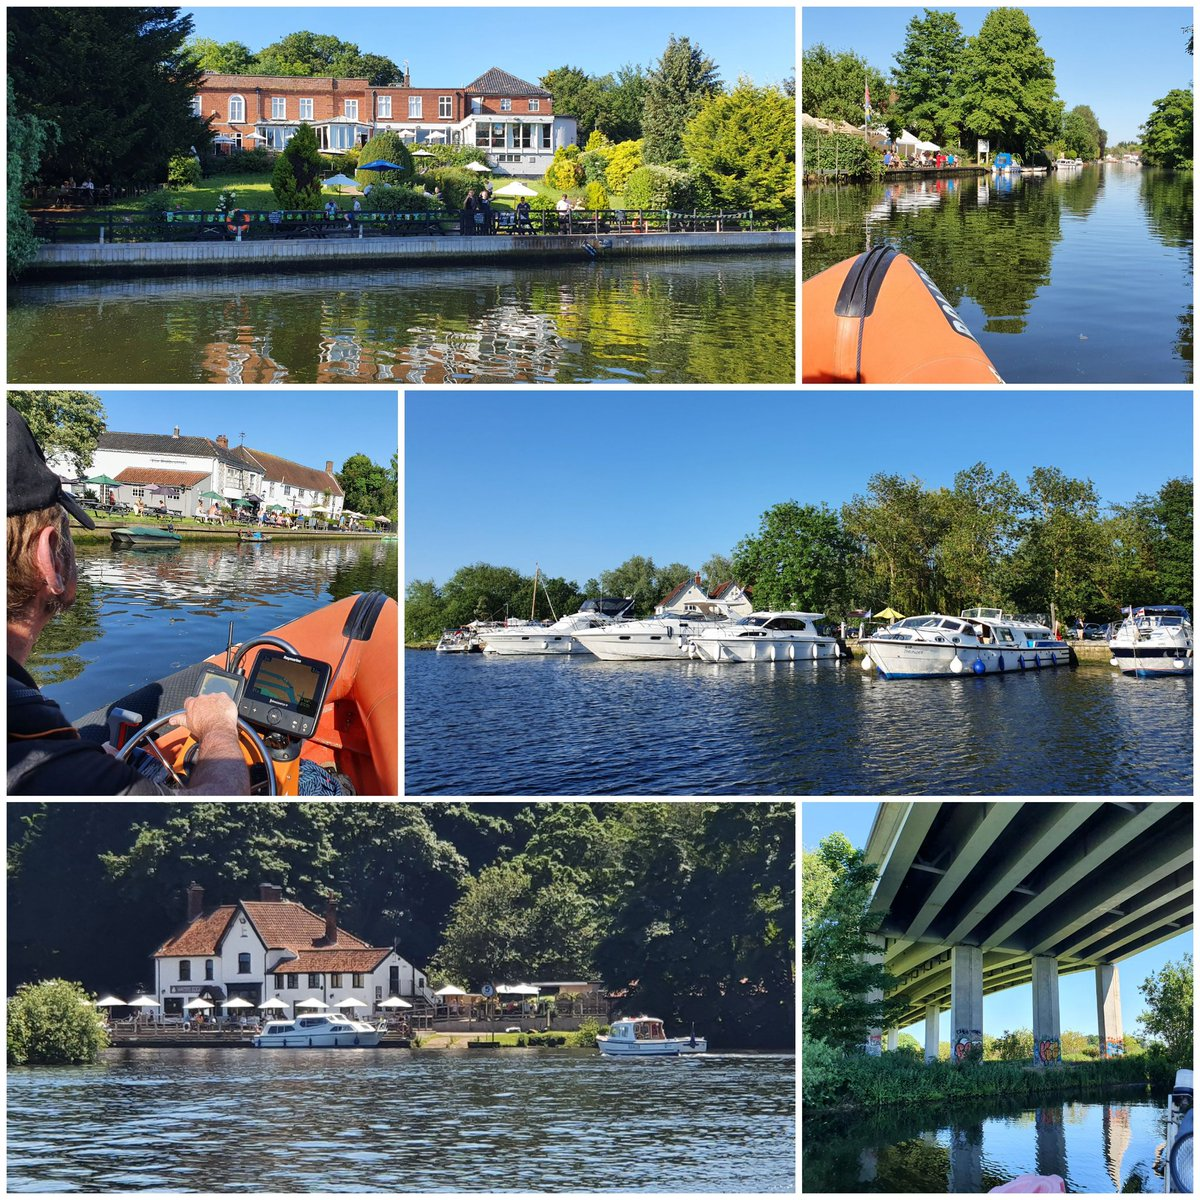 Busy at all pubs we patrolled today for @EURO2020 ⚓👨✈️☀️ @SurlinghamFerry @ChefandBrewer #rushcutters #rivergarden @stonehousepizza #Townhouse @watersedge_nfk @TSA_TownCouncil @NorfolkPolice https://t.co/SK5jJdAZ8I